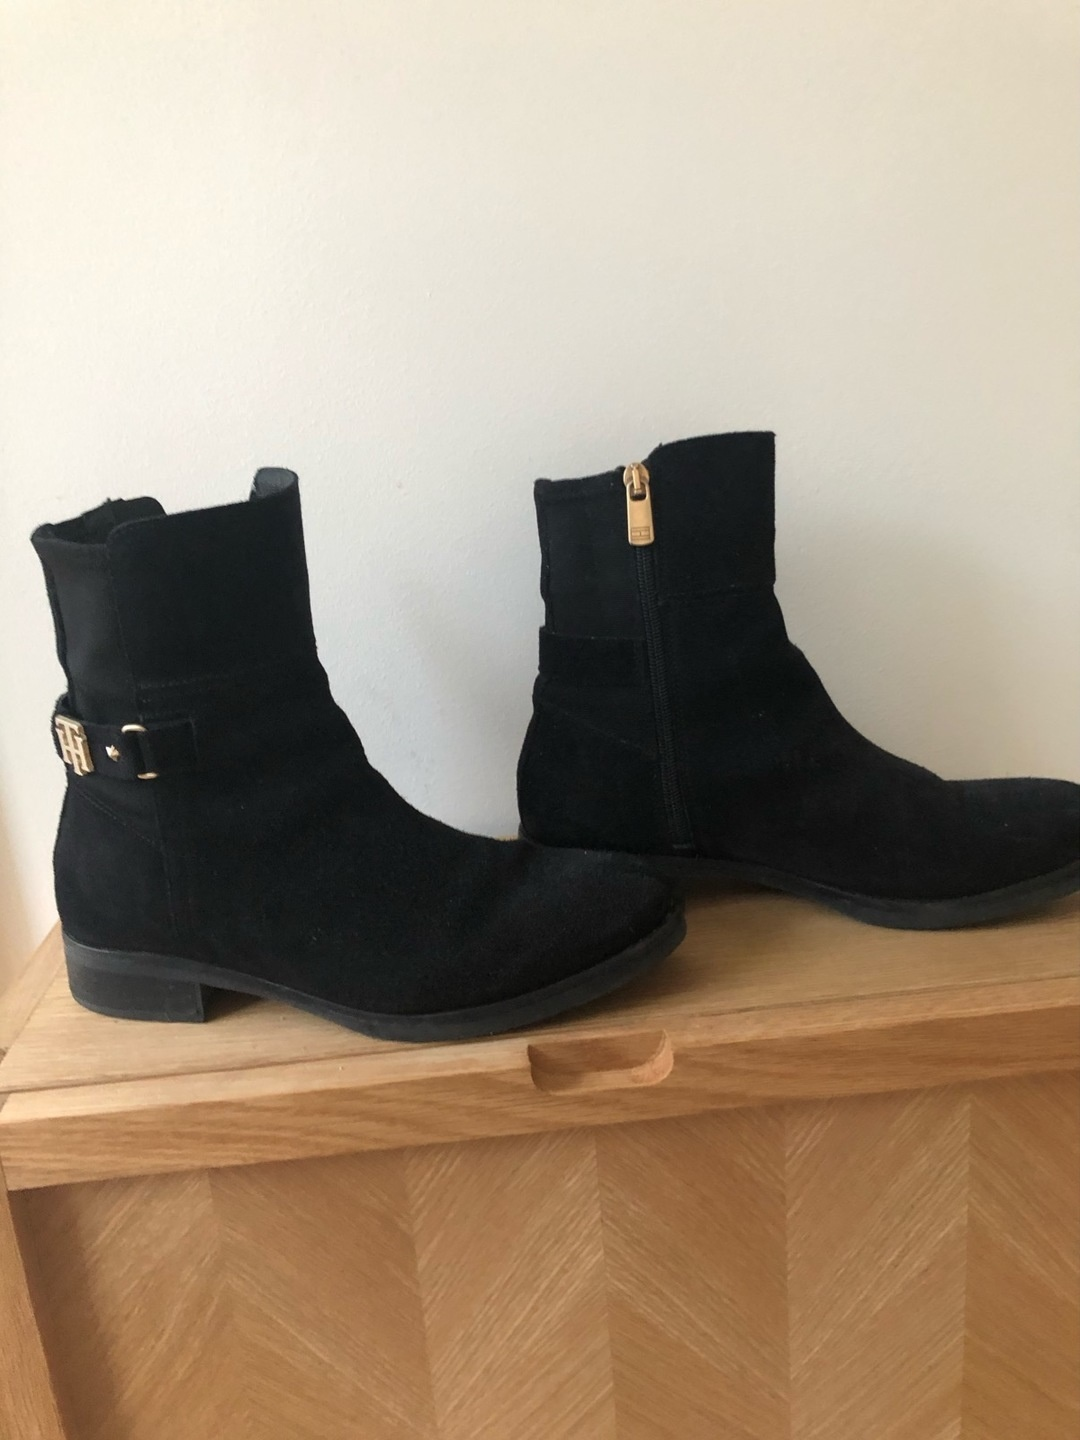 Women's boots - TOMMY HILFIGER photo 3